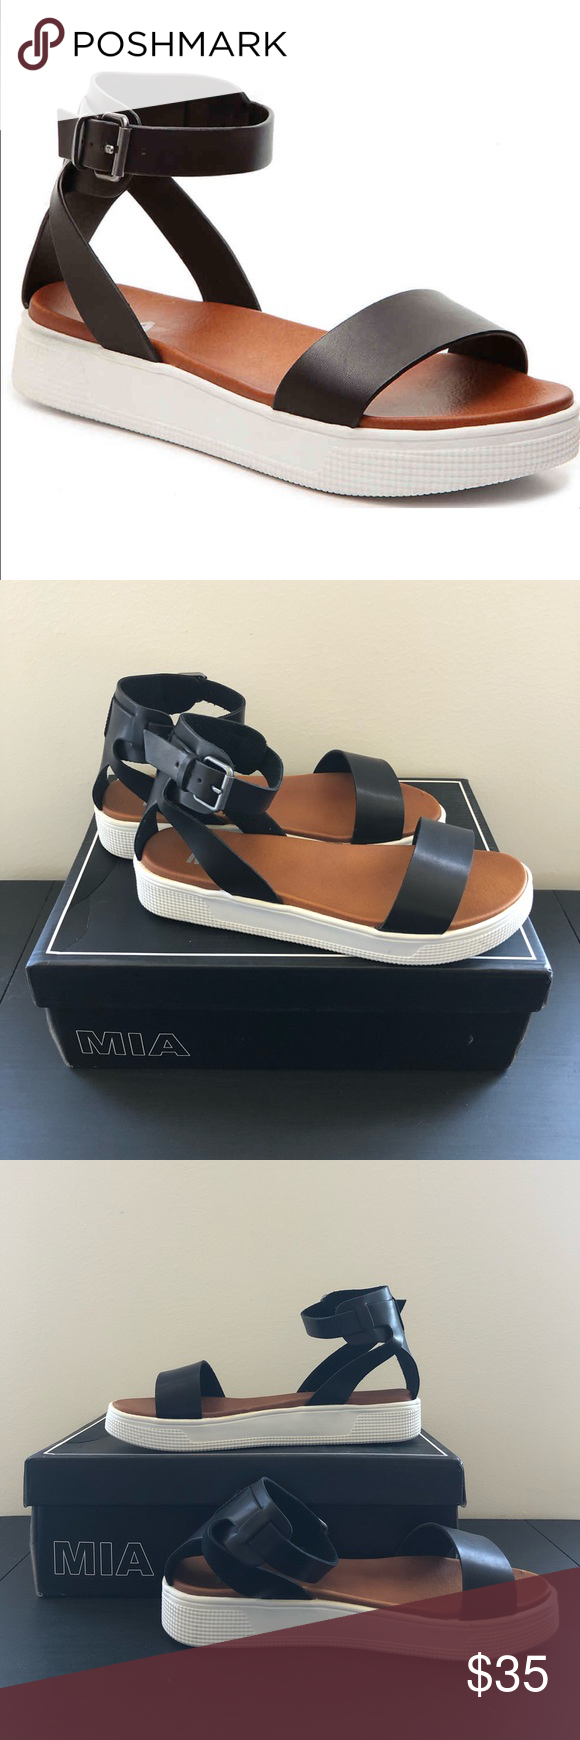 3e3d4839565 Mia Ellen Sandal Missing your platforms from the 90s  These Mia platform  sandals are the perfect